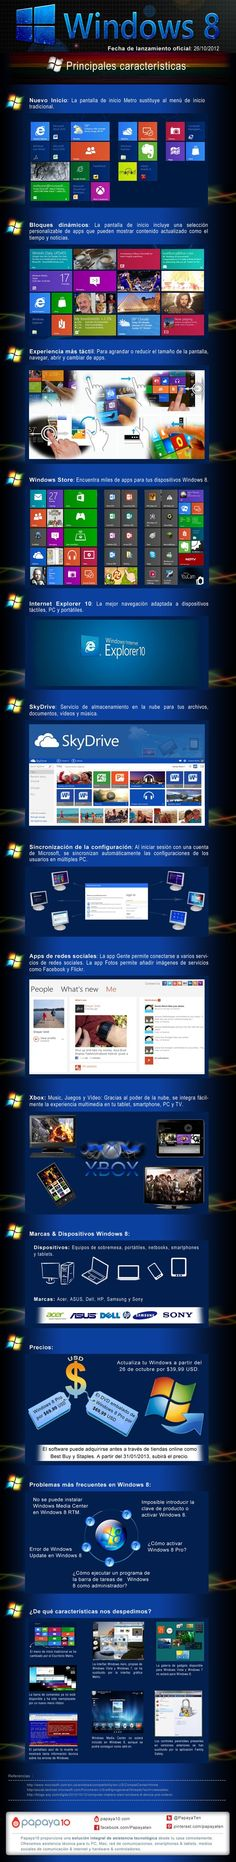 Windows 8: principales características